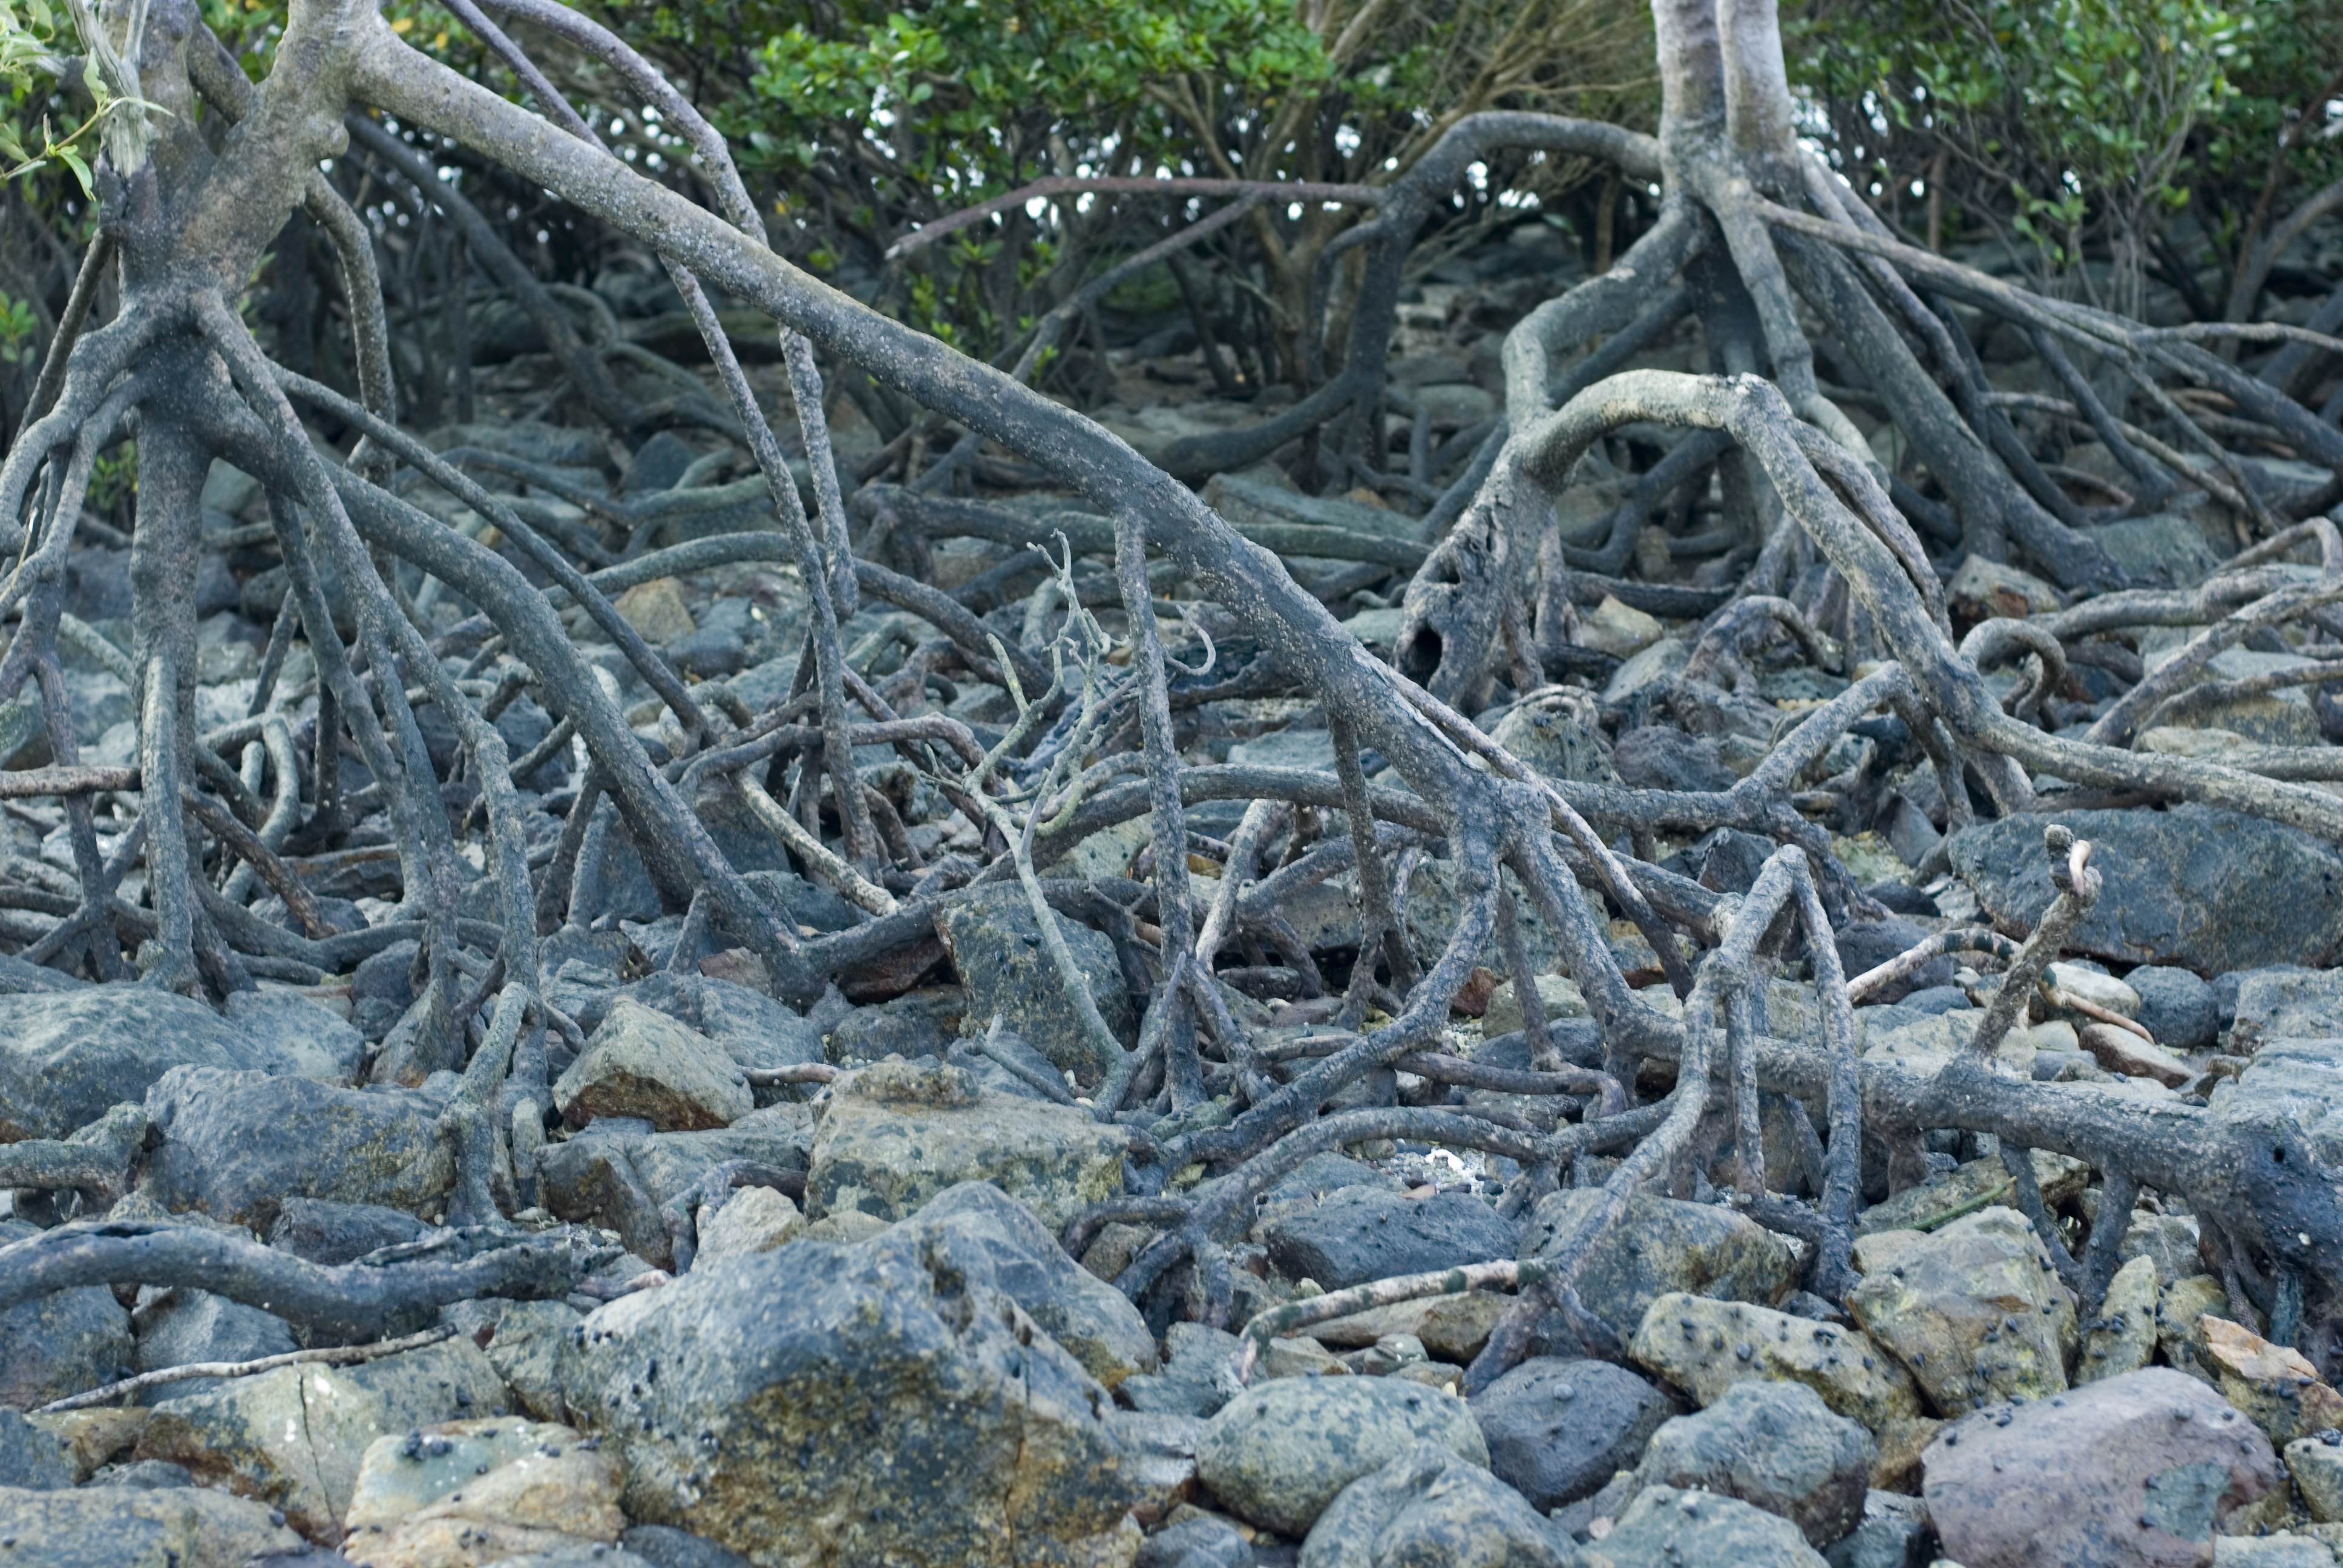 details of mangrove roots